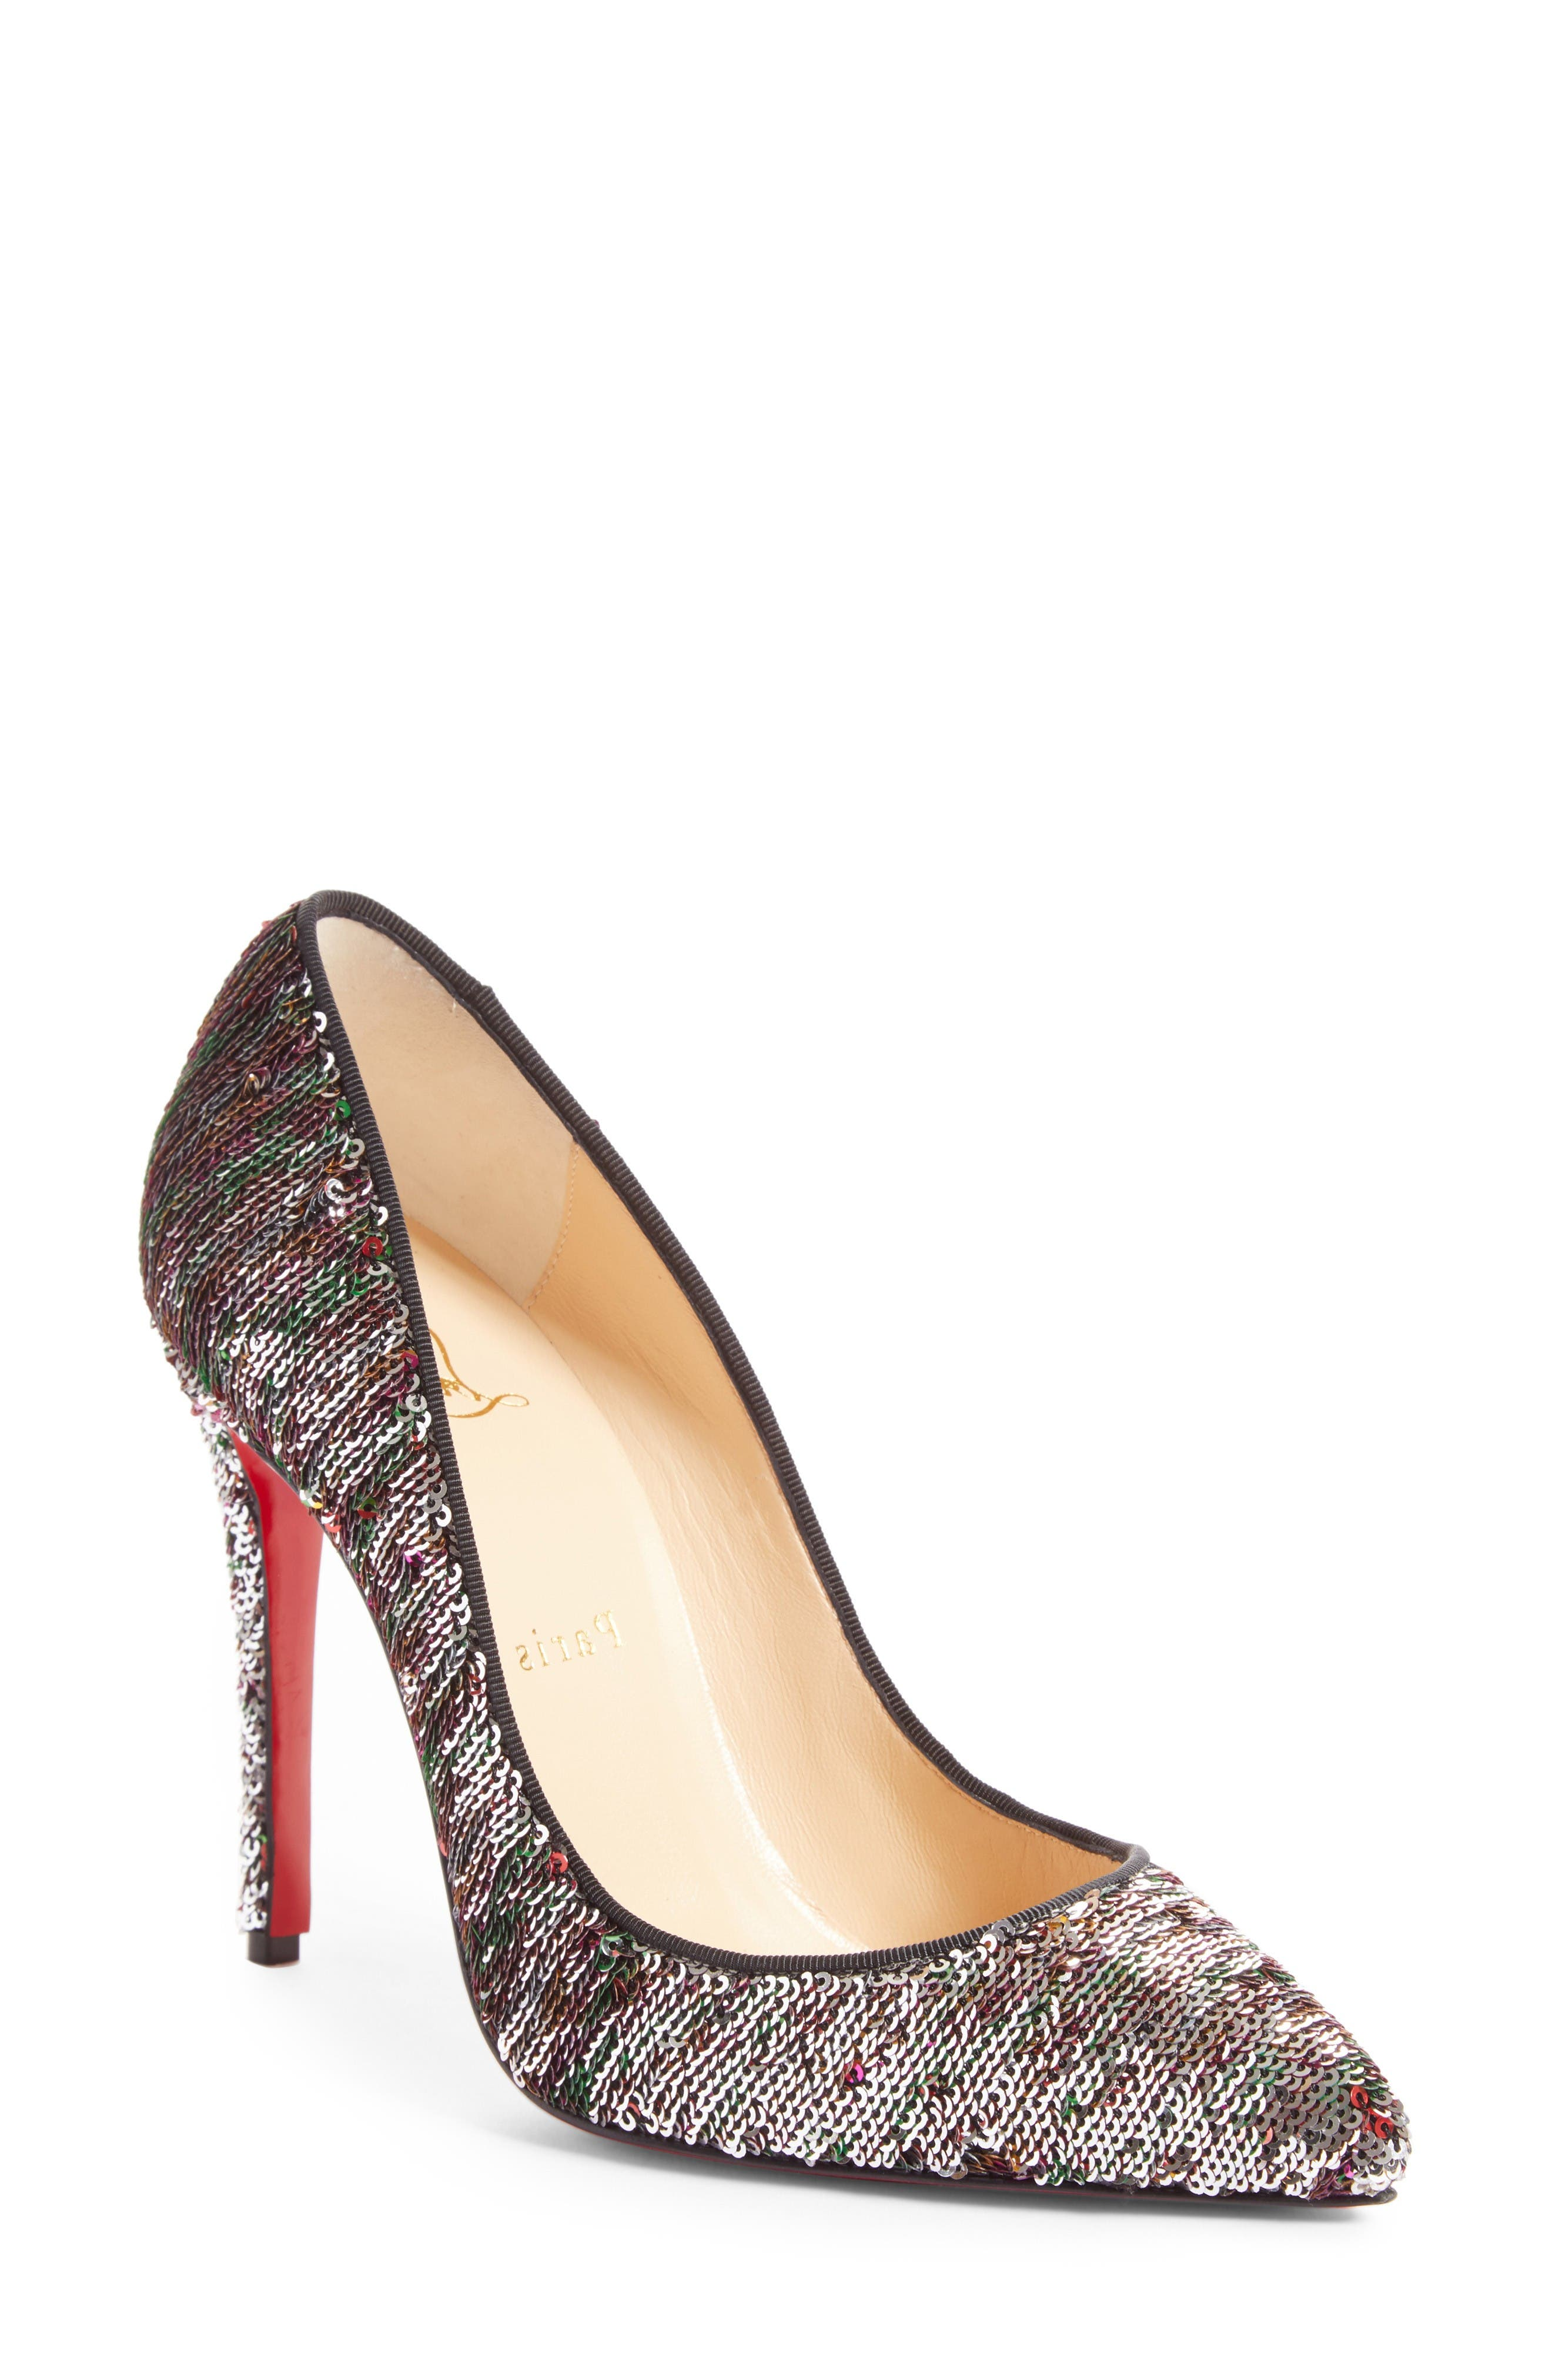 Alternate Image 1 Selected - Christian Louboutin Pigalle Follies Sequin Pointy Toe Pump (Women)